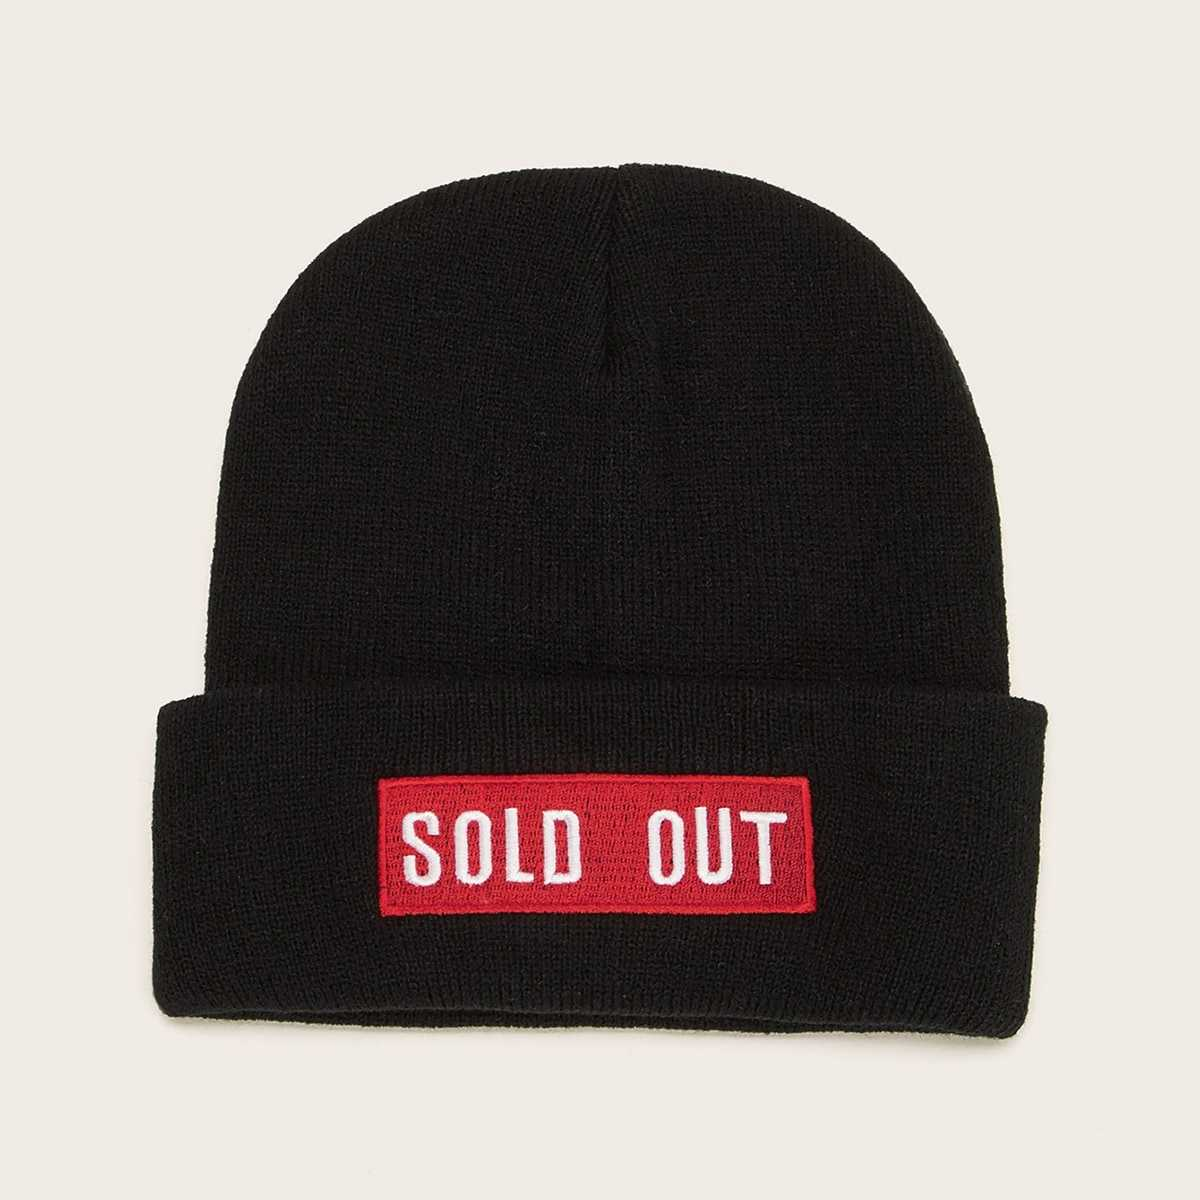 Slogan Embroidery Cuffed Beanie in Black by ROMWE on GOOFASH